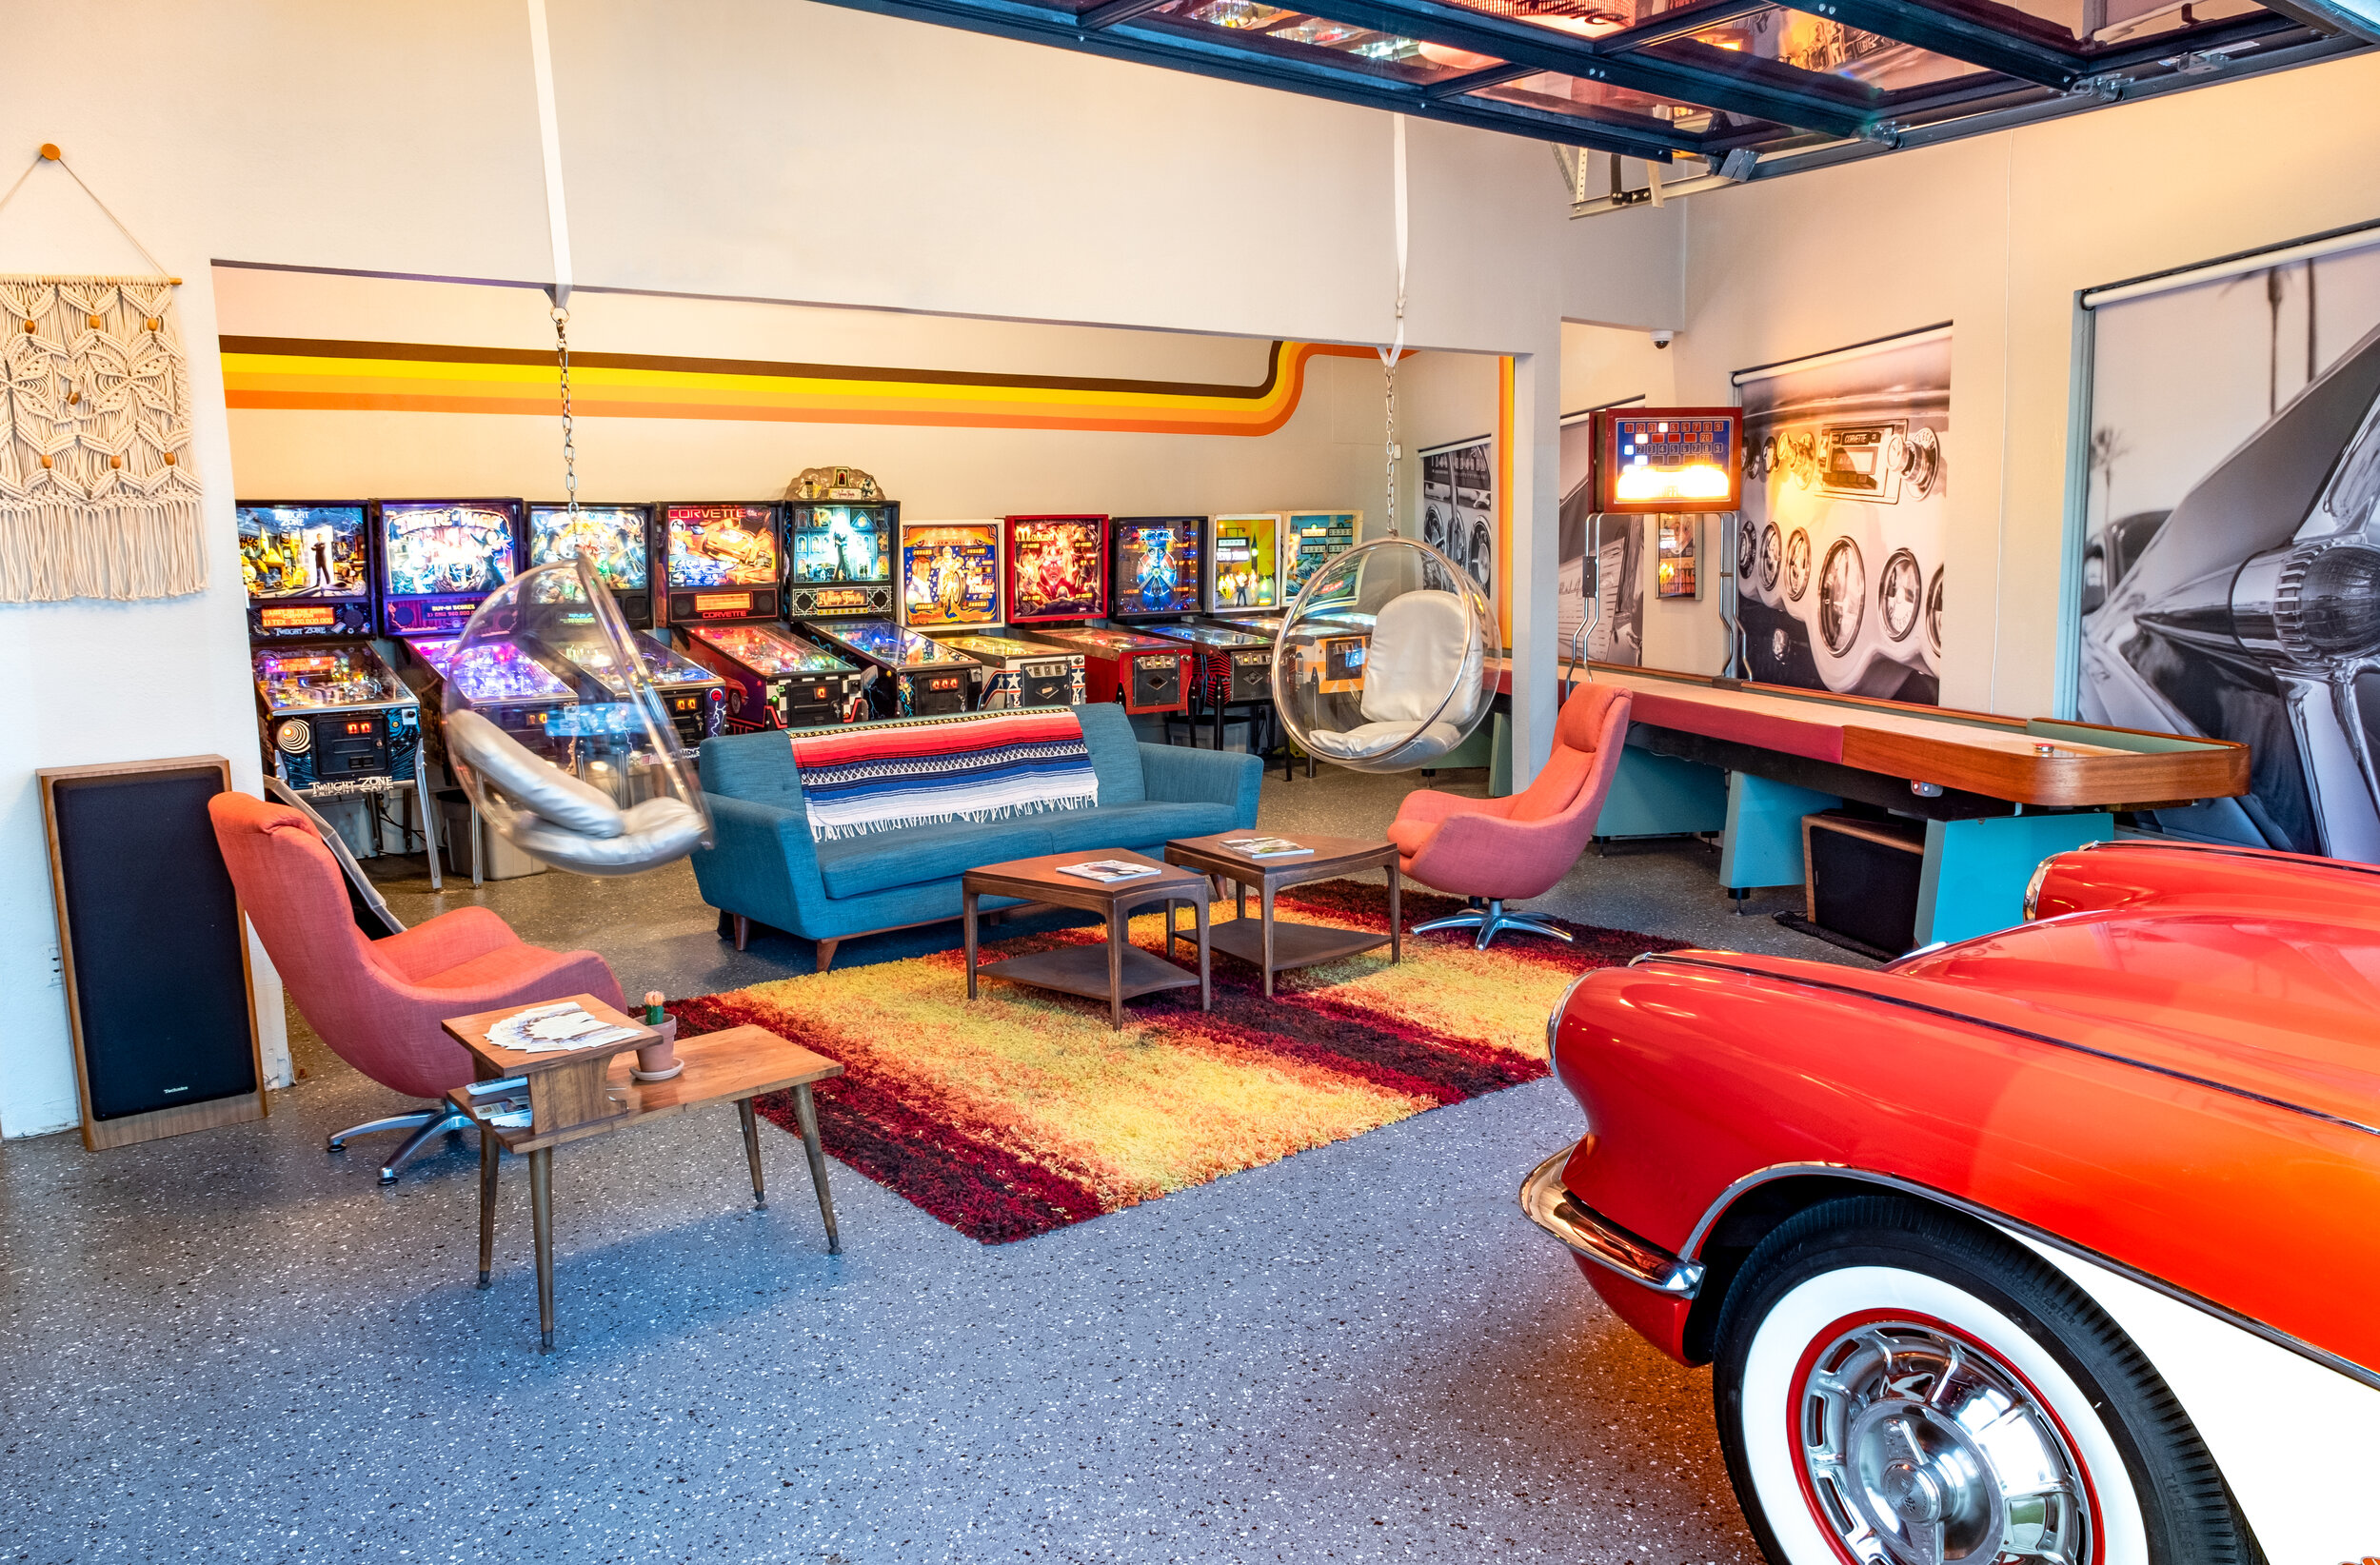 The Deal - Garage 77 is a community where members have real-time access to a fleet of eight classic cars, a shared 70's inspired clubhouse with pinball, shuffleboard, work-space, social areas and member-only events. Contact us to schedule a tour of Garage 77, experience our fleet and learn more about what membership has to offer!